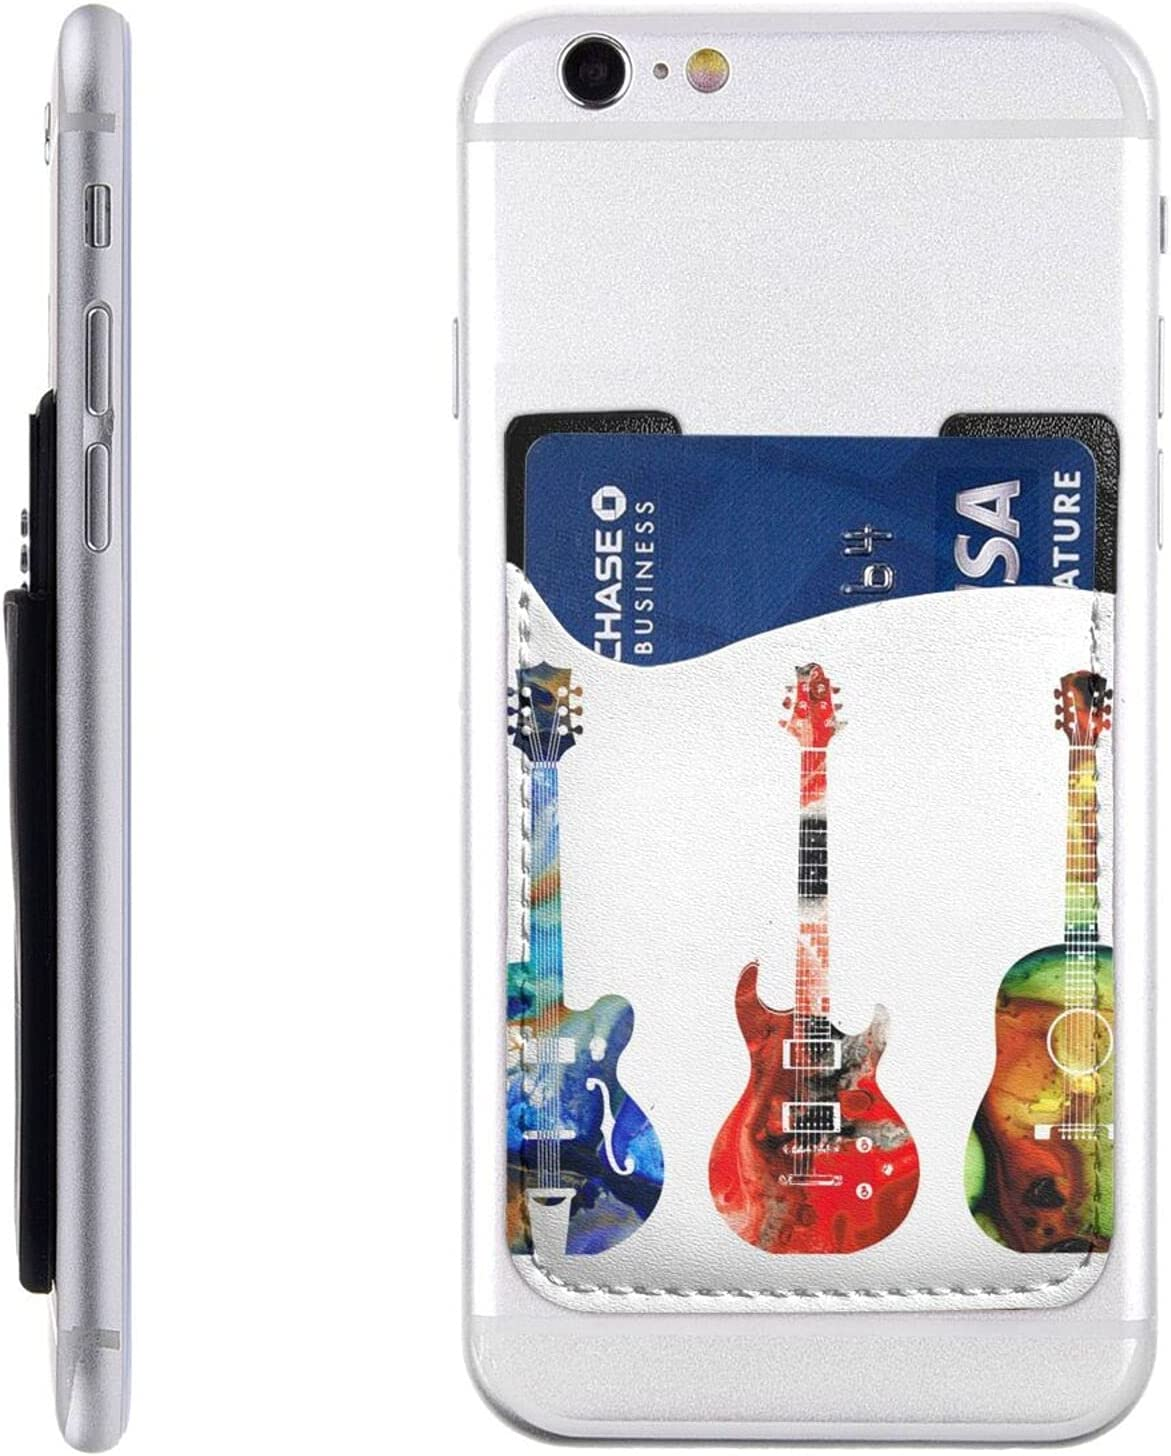 Colorful Guitars Cheap mail order specialty store Phone Card Holder Cell Sales results No. 1 Wall On Stick